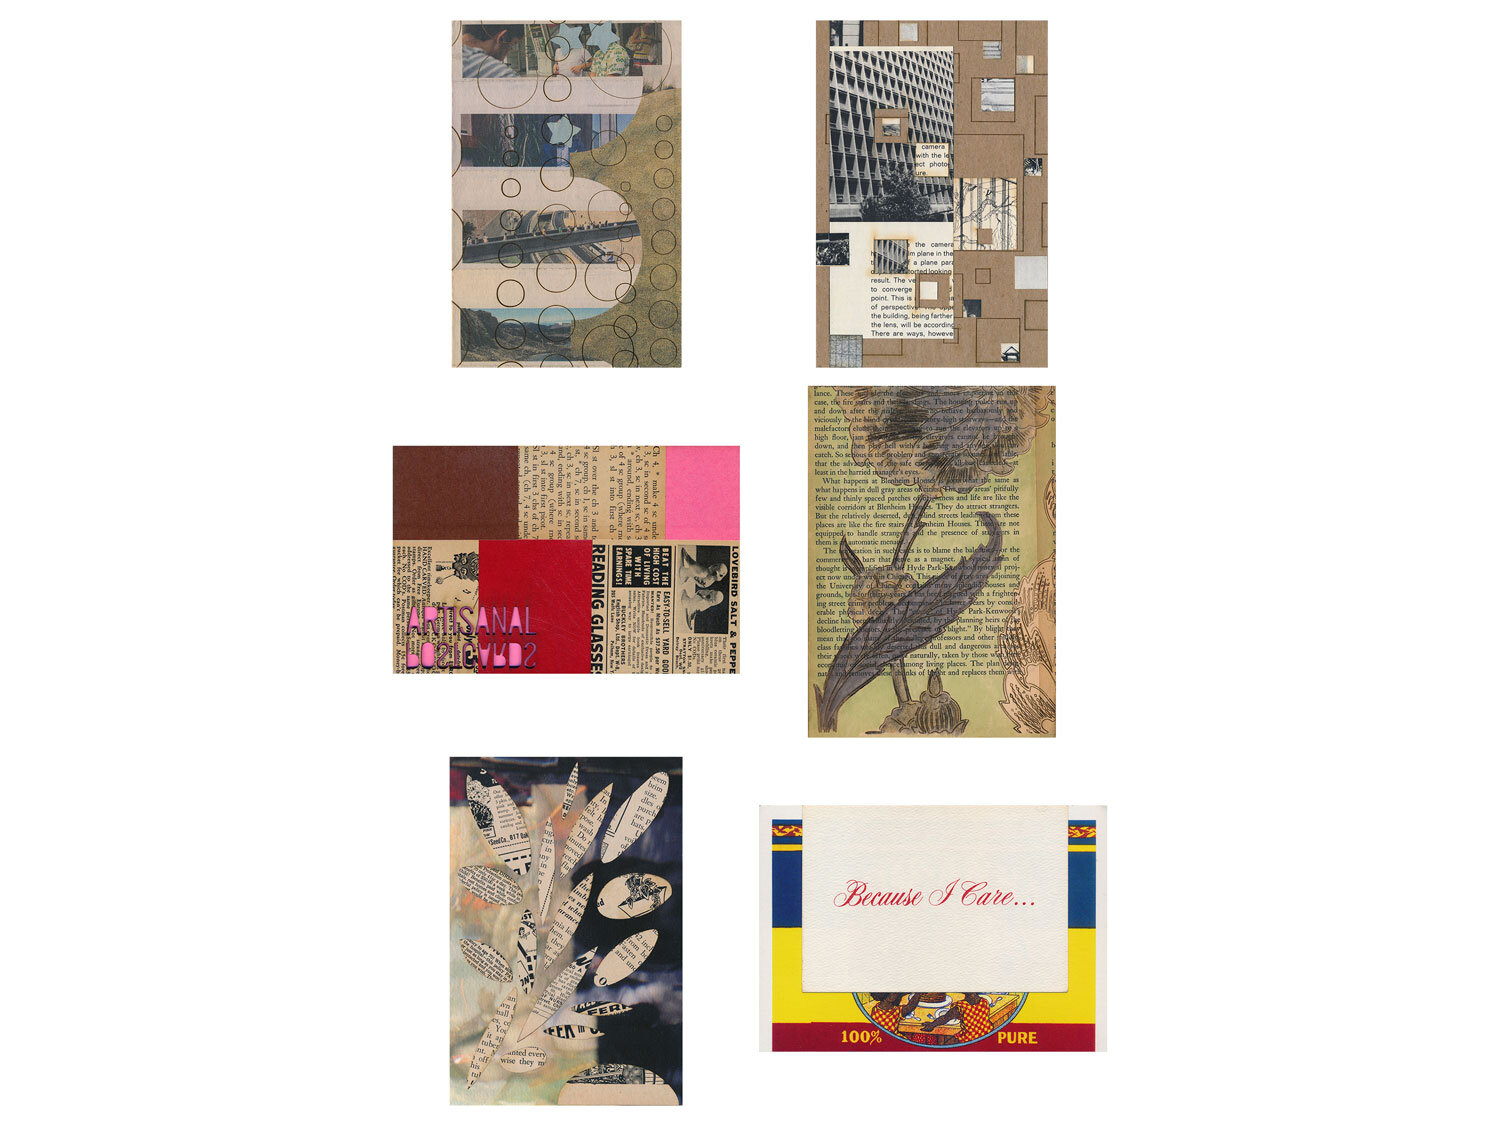 Six month mail art gift subscription, variety option, mailed as a postcard, to Dillon from Austen.  Artisanal Postcard Numbers 1,541 • 1,593 • 1,489 • 1,623 • 1,645 • 1,546